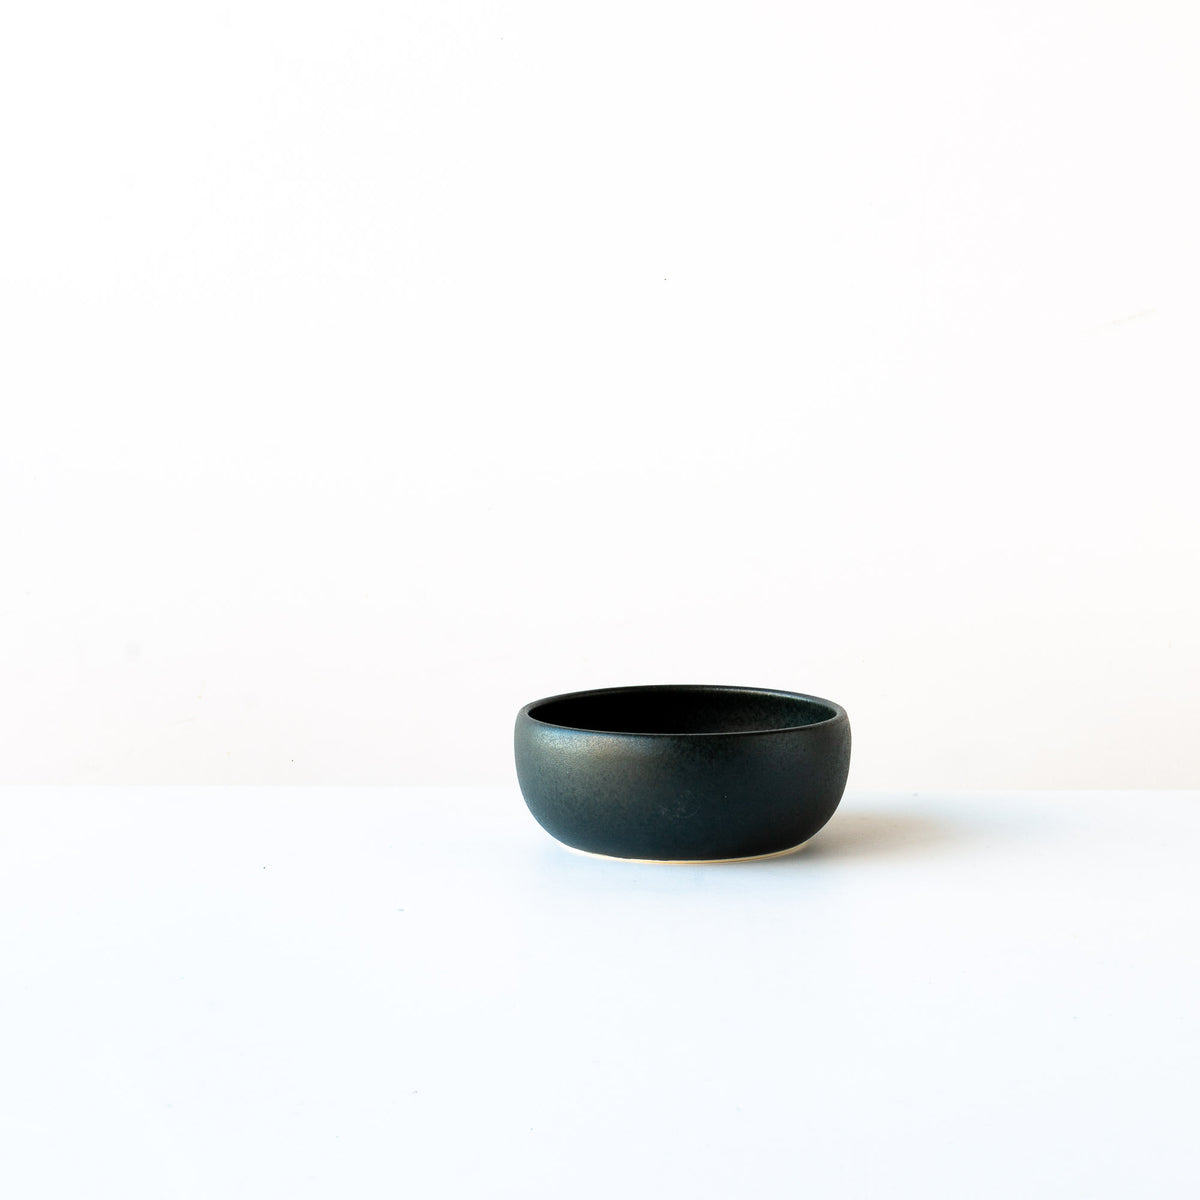 Side View - Black Satin Glazed Porcelain Small Flat Bowl - Sold by Chic & Basta